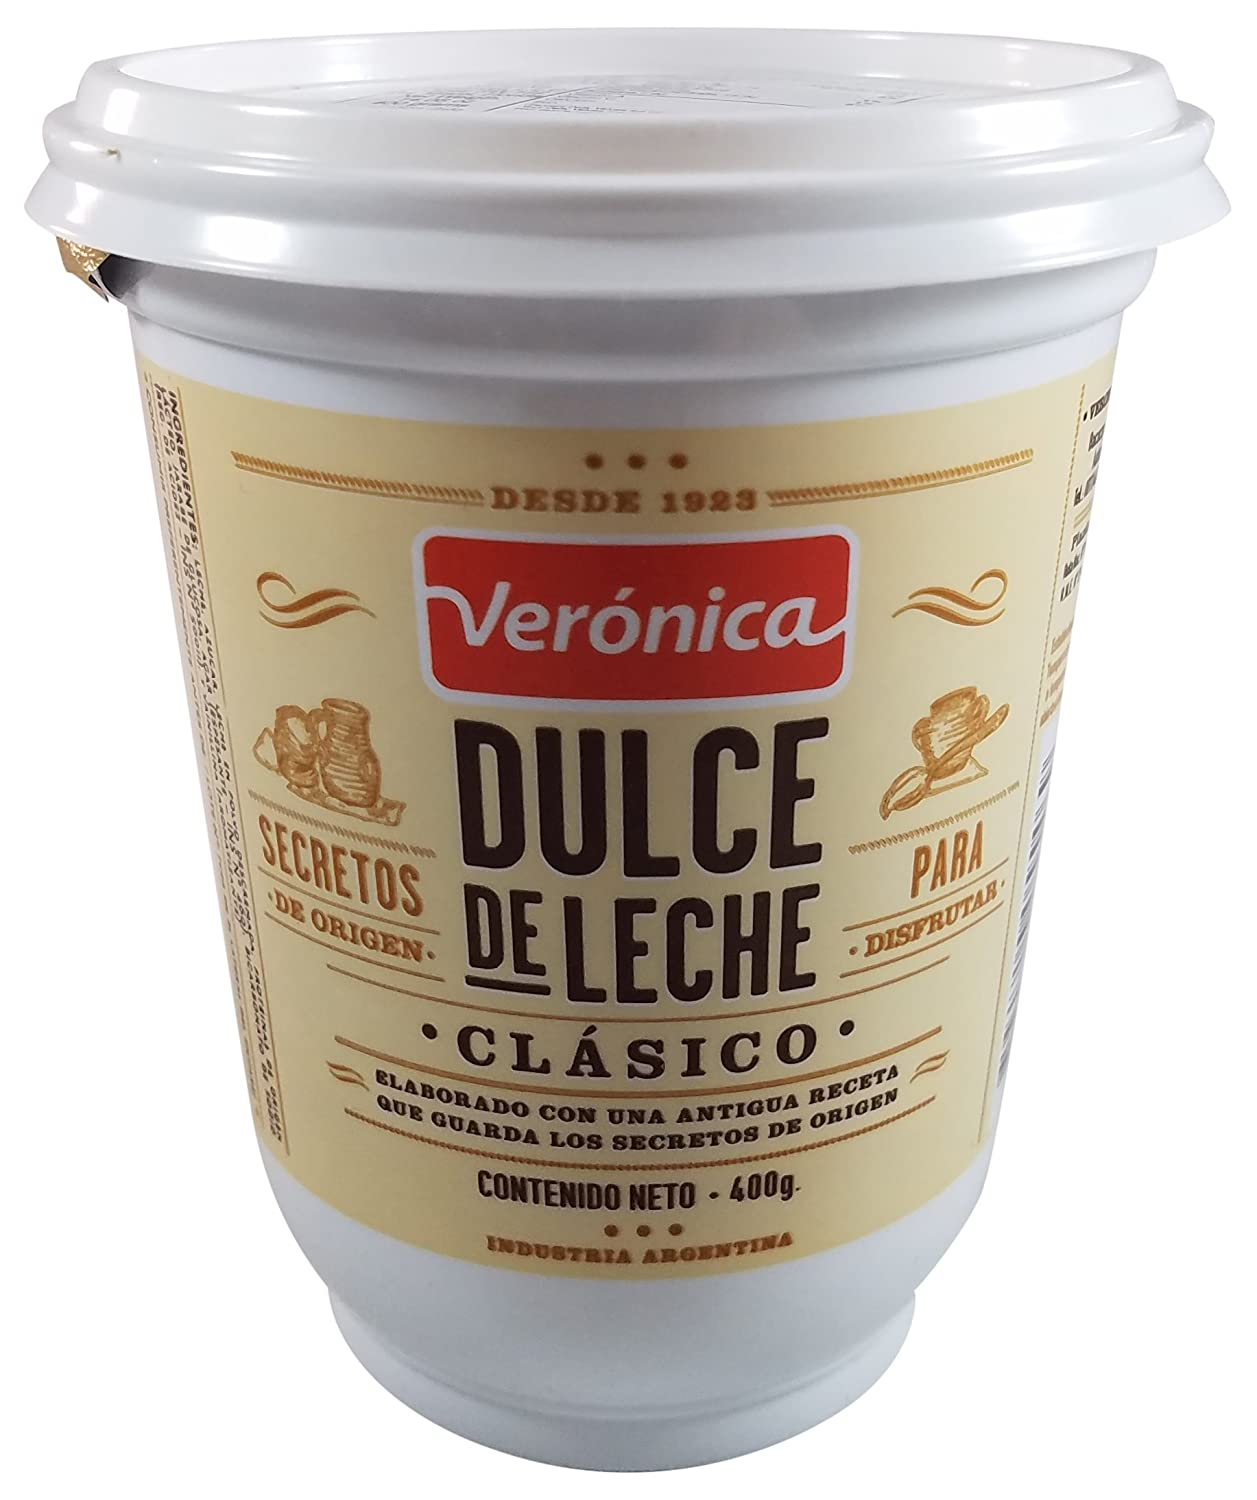 Amazon.com : VERONICA Dulce de leche Veronica Clasico, 0.88 lb : Grocery & Gourmet Food